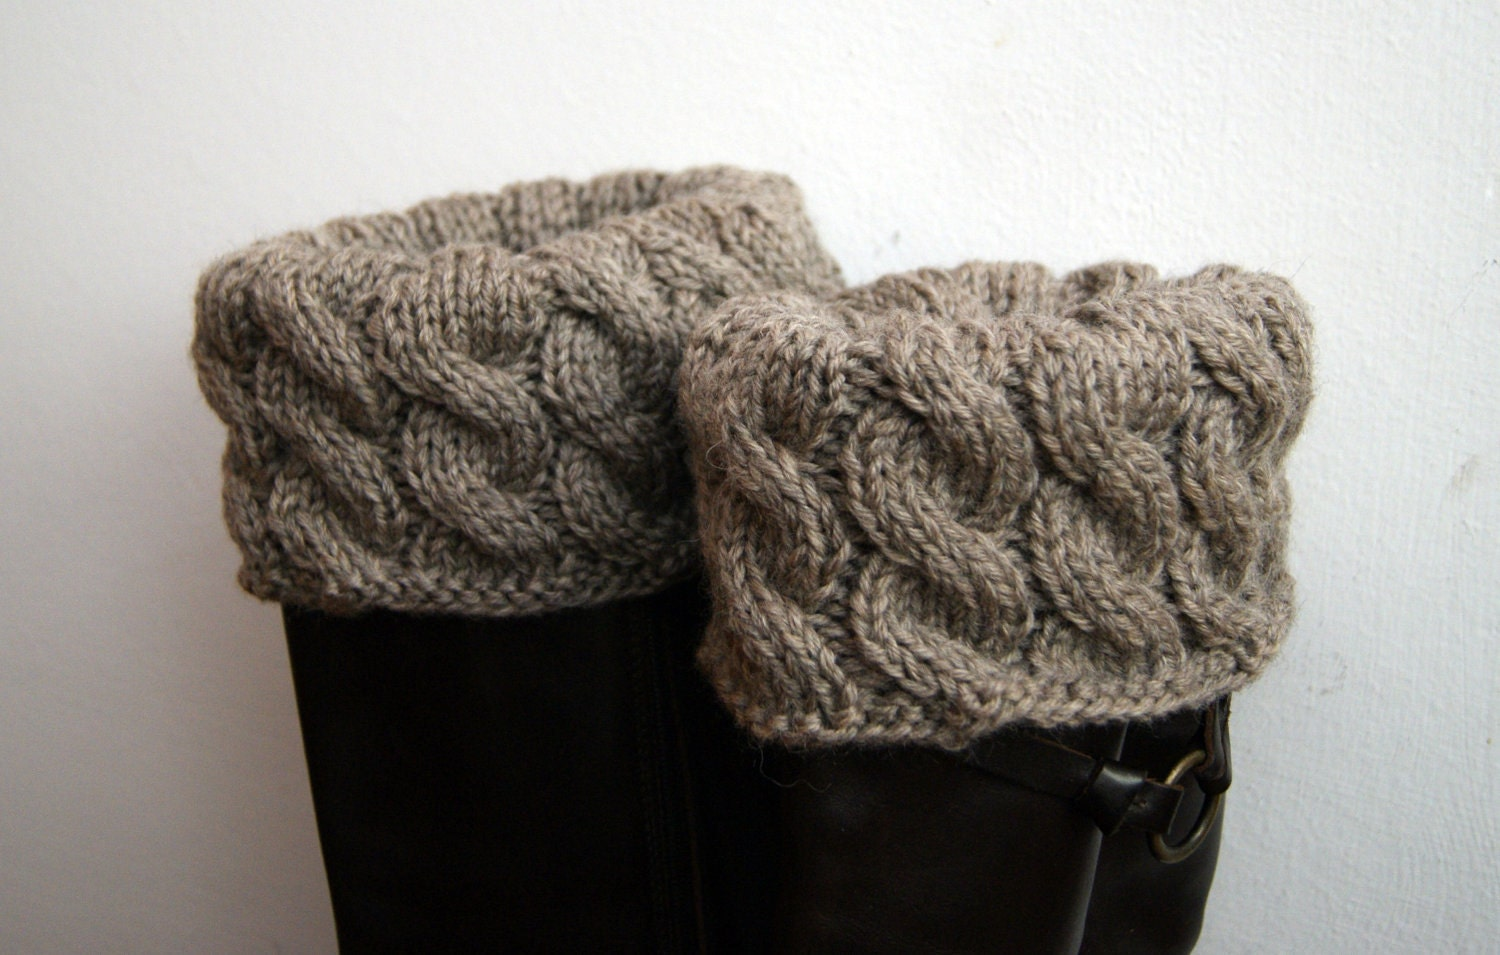 Knitting Patterns For Boot Toppers : boot toppers cuffs taupe cabled knitted